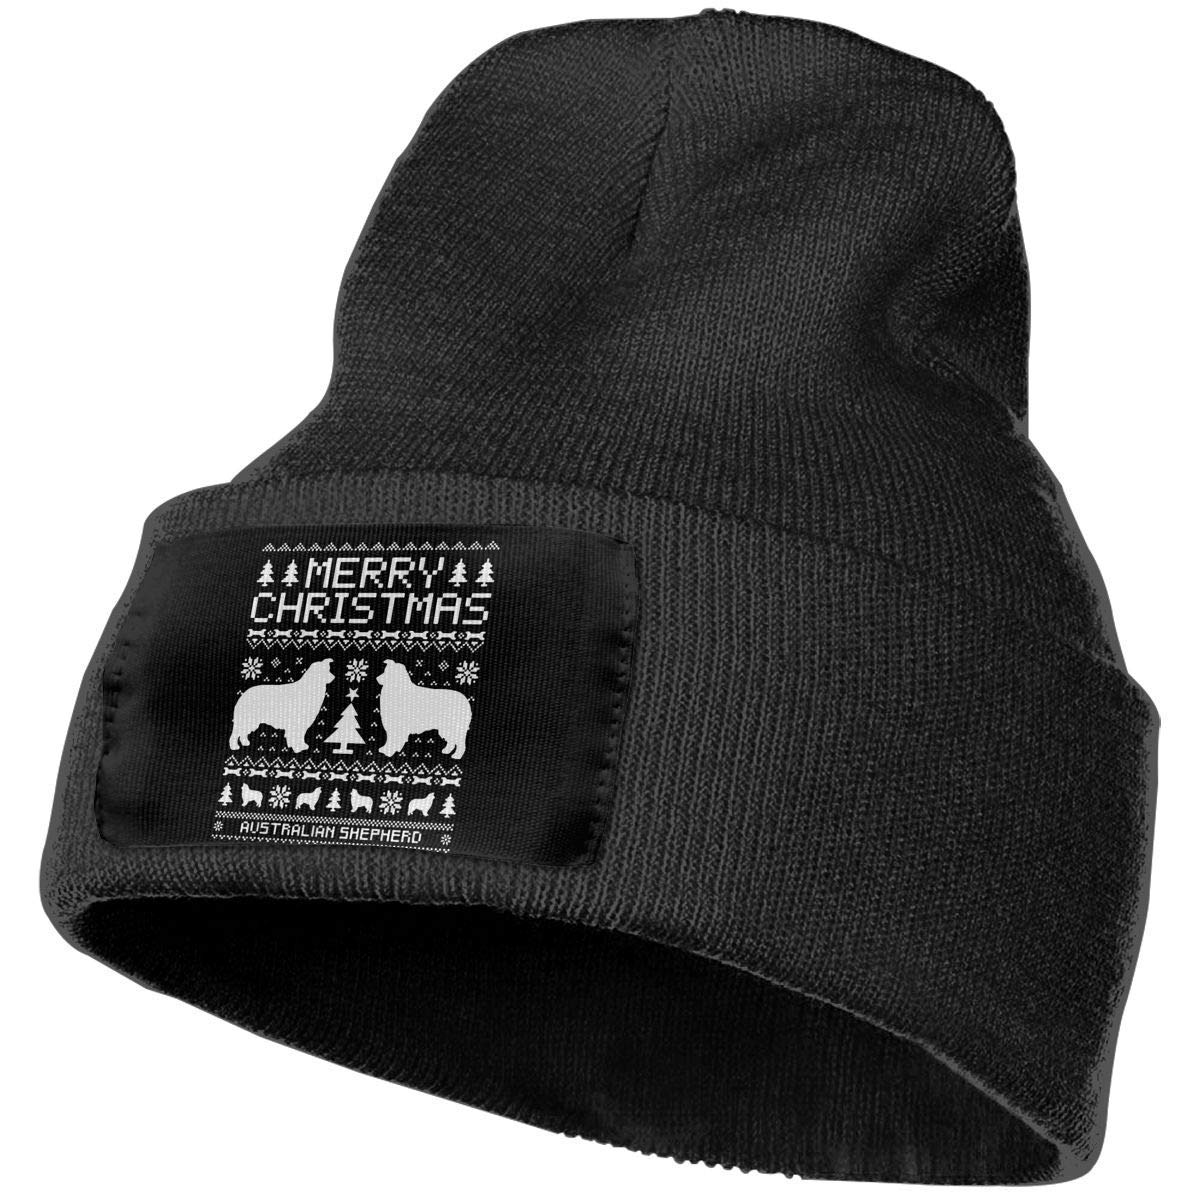 SDLZIJFGHBC Fashion new warm Unisex Men/Women Australian Shepherd Dog Merry Christmas Outdoor Stretch Knit Beanies Hat…